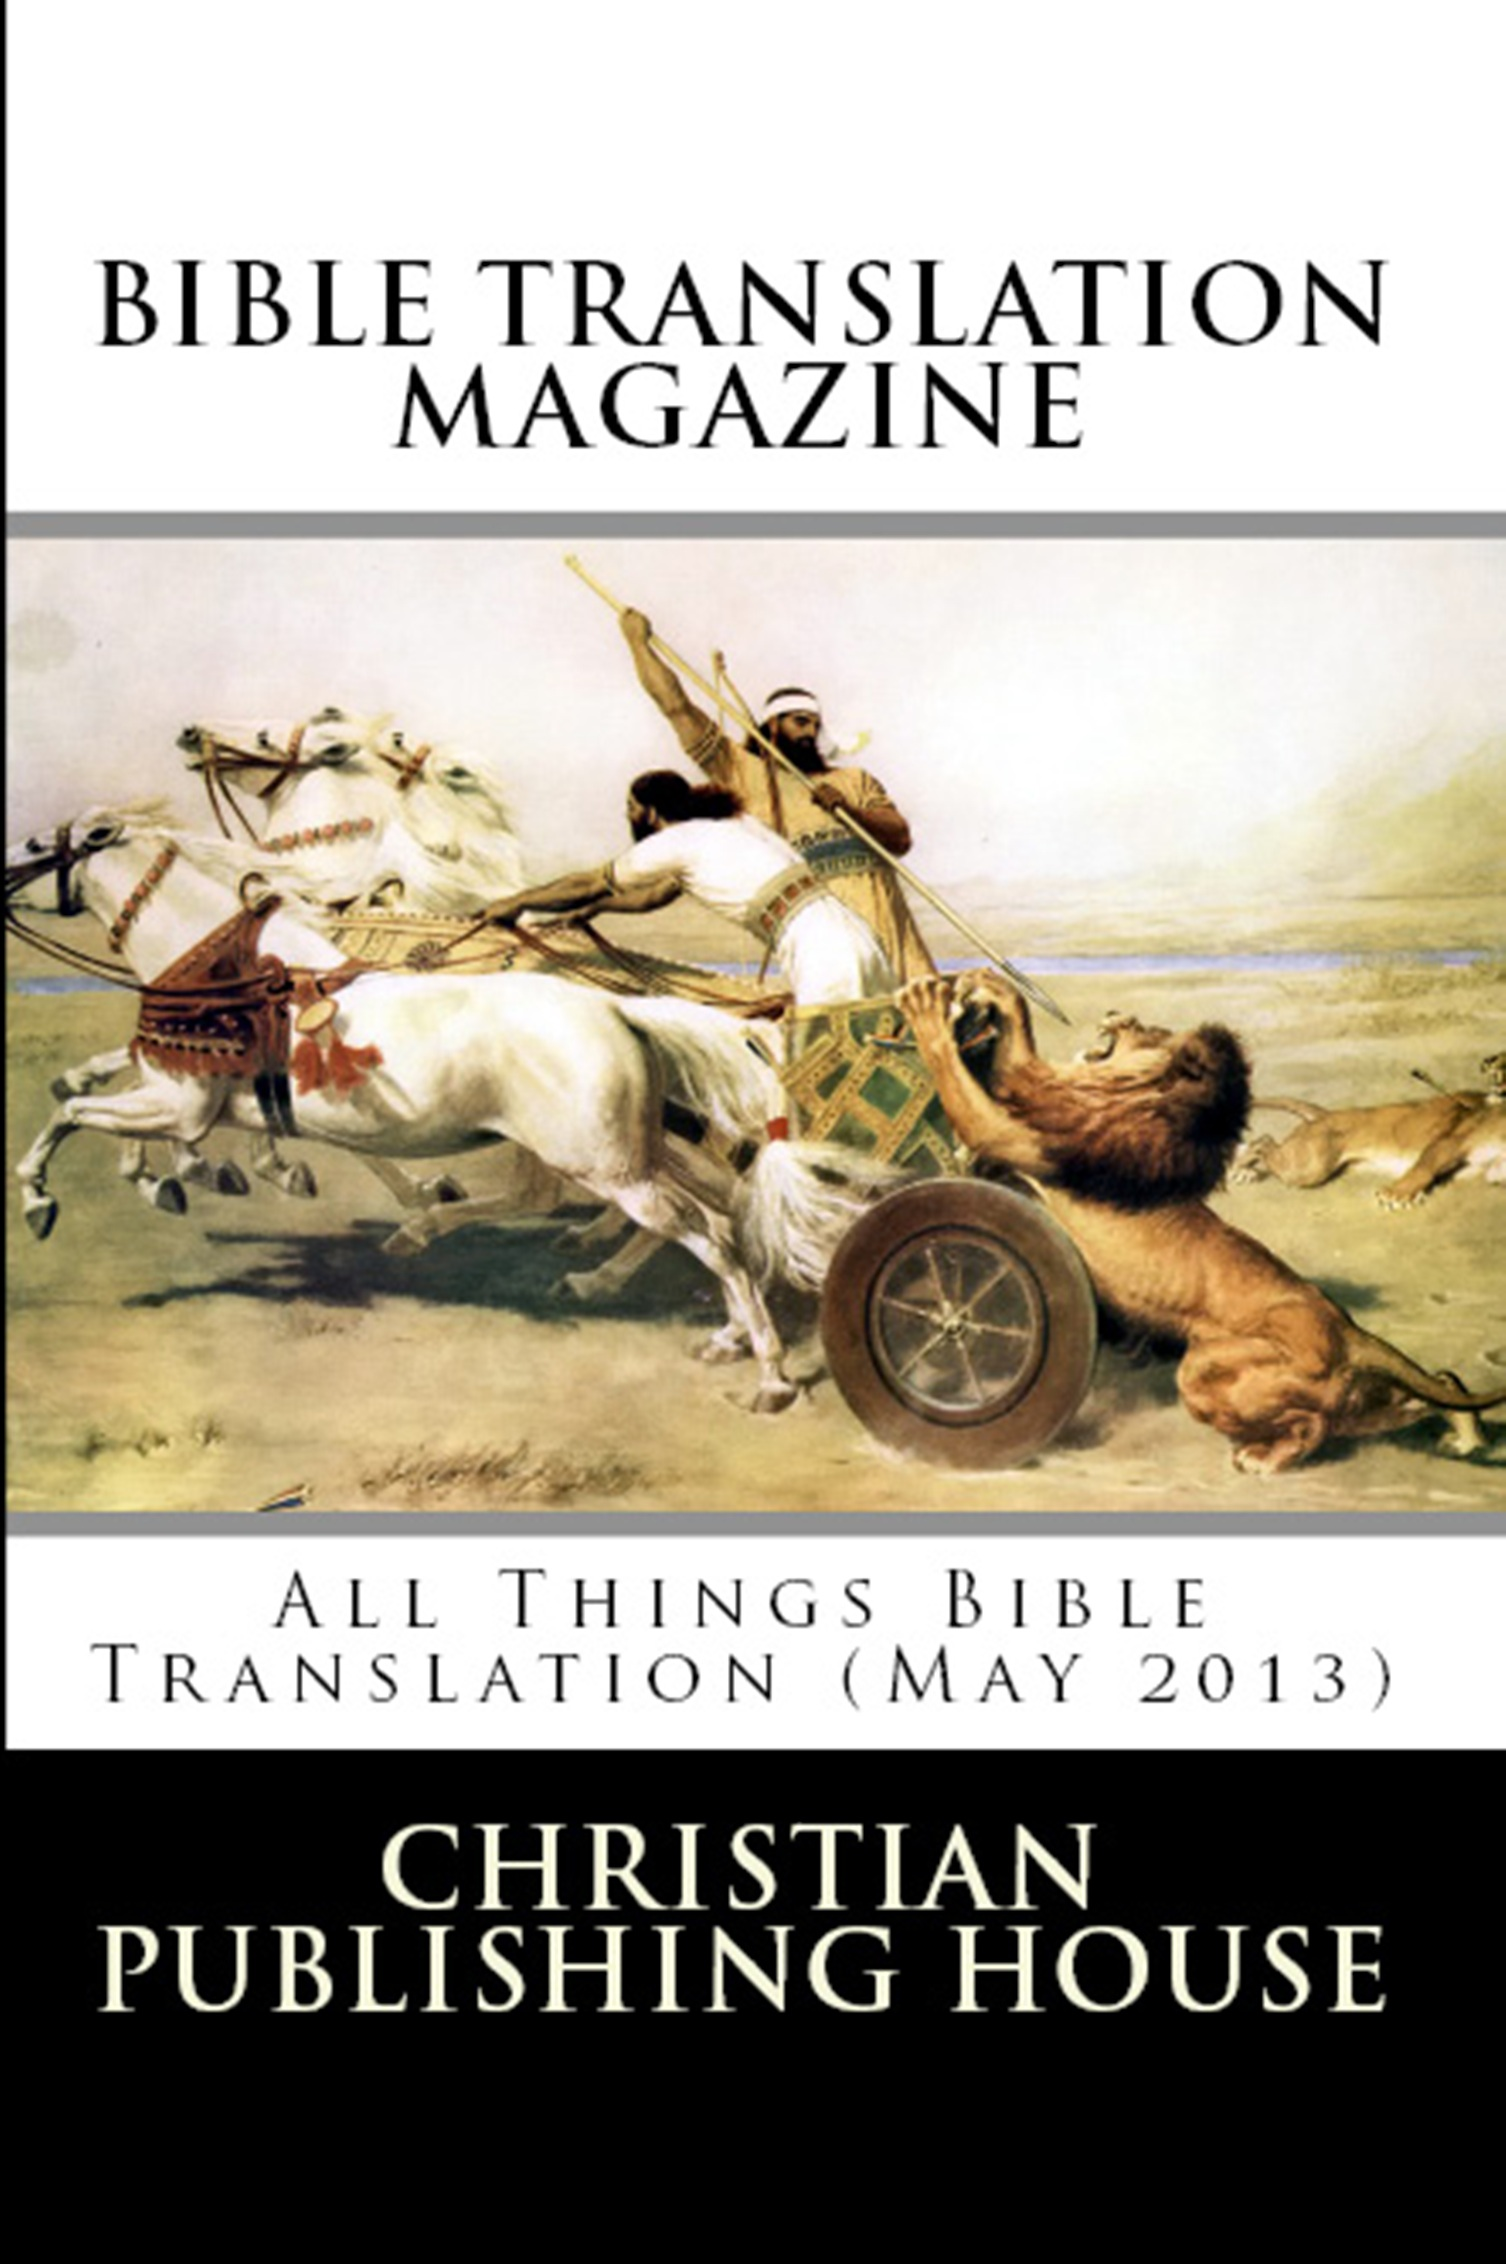 BIBLE TRANSLATION MAGAZINE: All Things Bible Translation (May 2013)